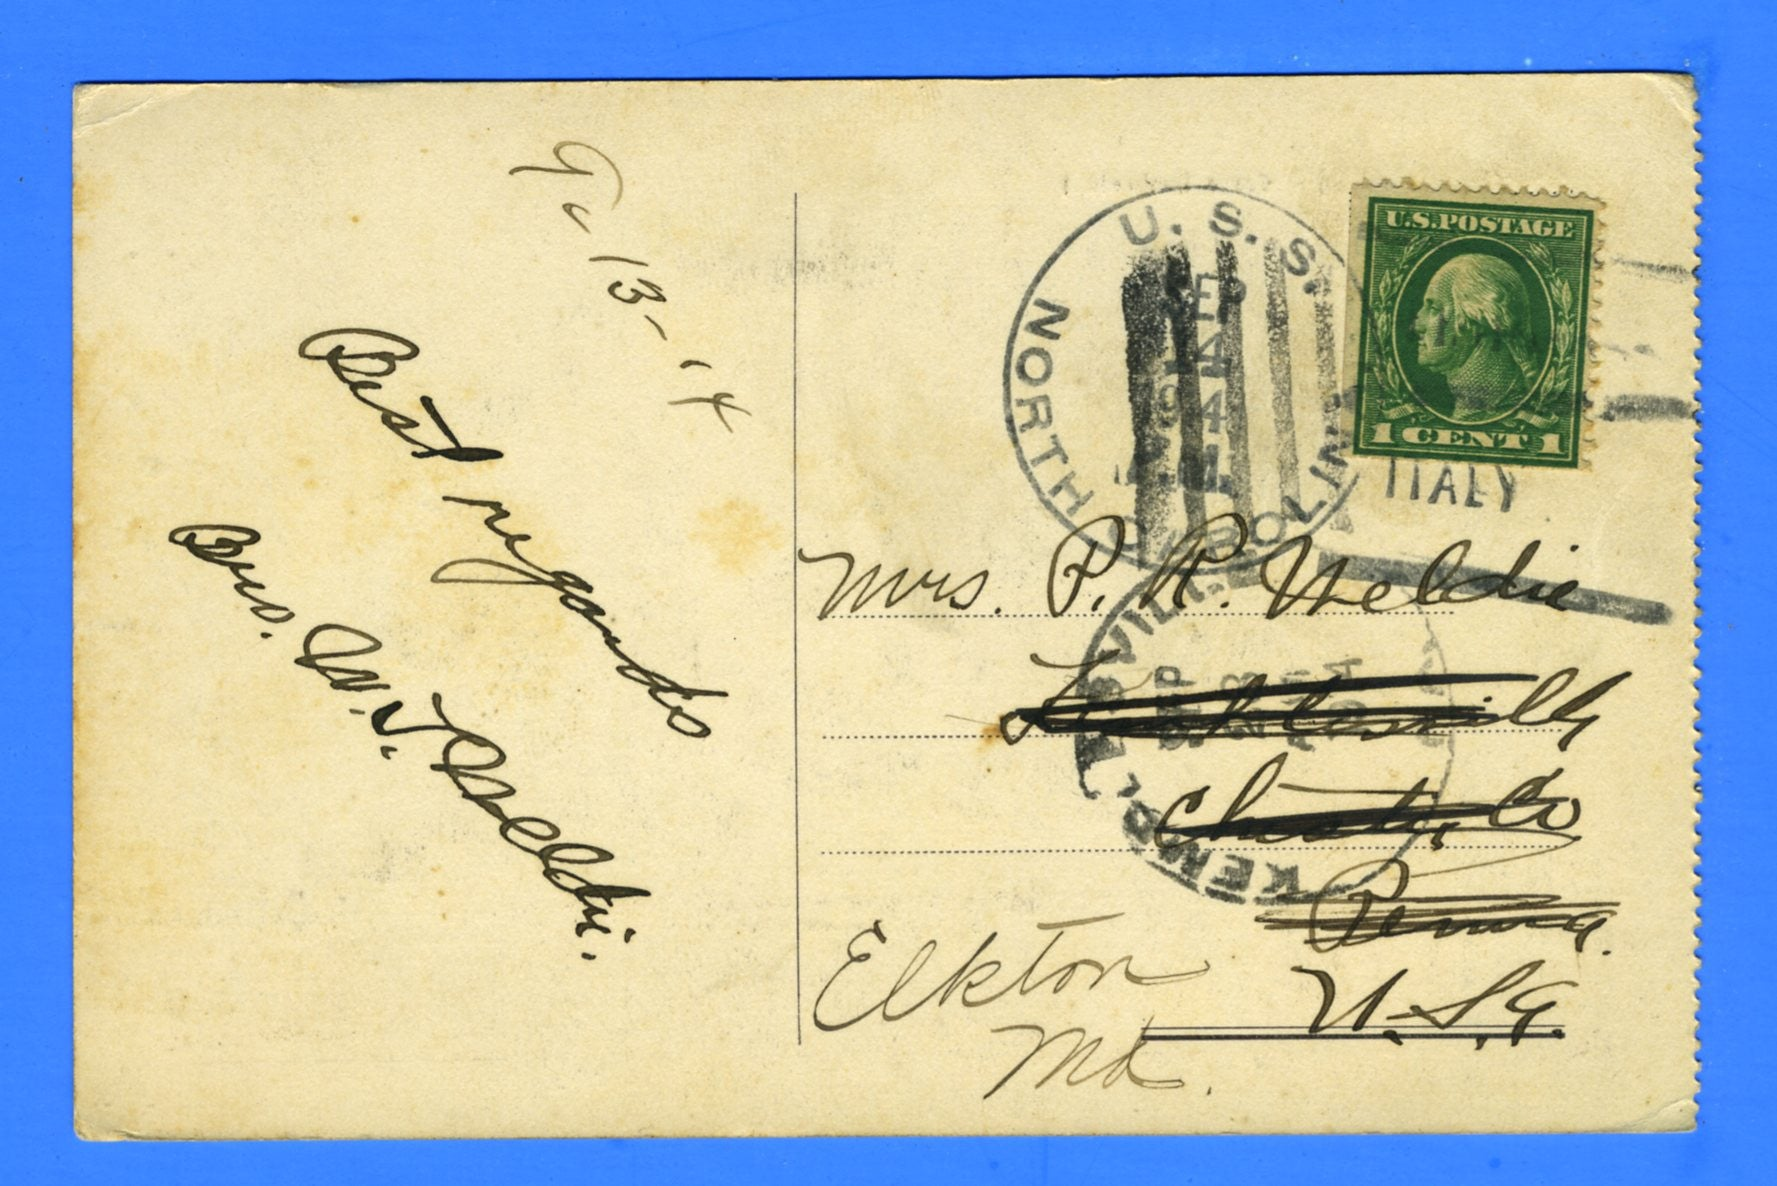 USS North Carolina ACR-12 Sailor's Mail from Italy September 14, 1914